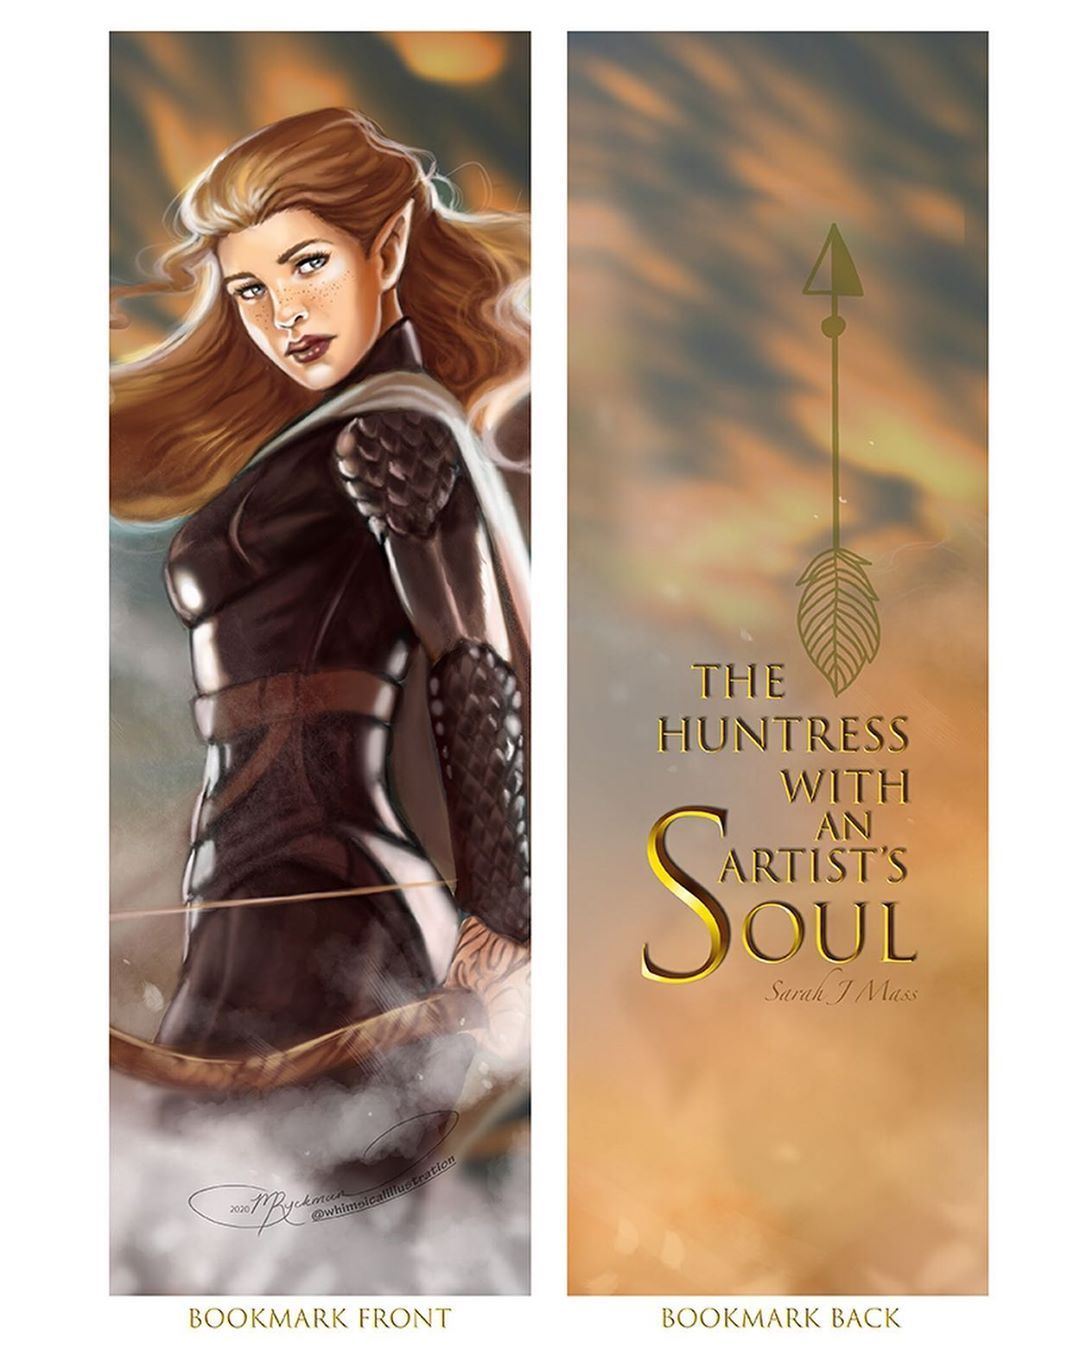 Pin By Alexa On World Of Sjmaas In 2020 A Court Of Mist And Fury